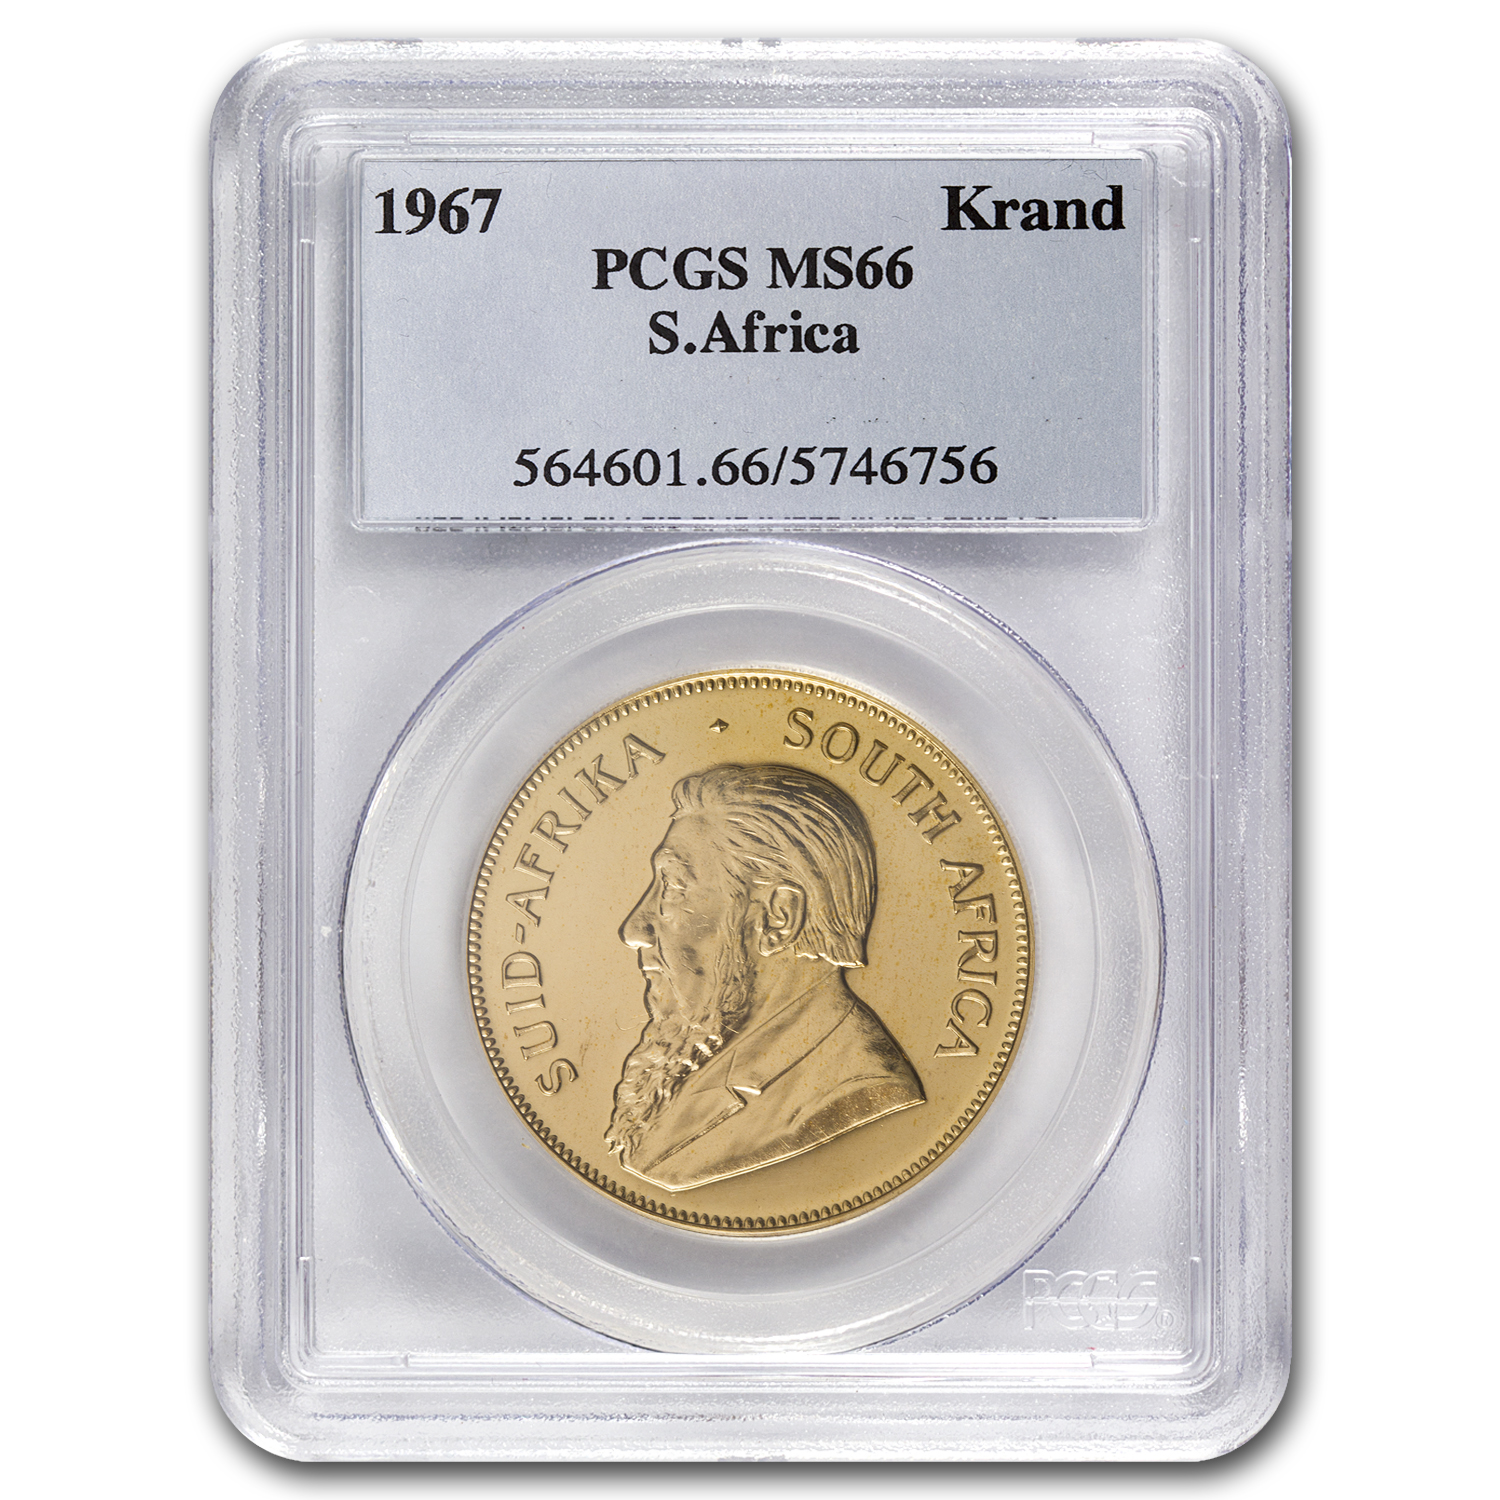 1967 South Africa 1 oz Gold Krugerrand MS-66 PCGS